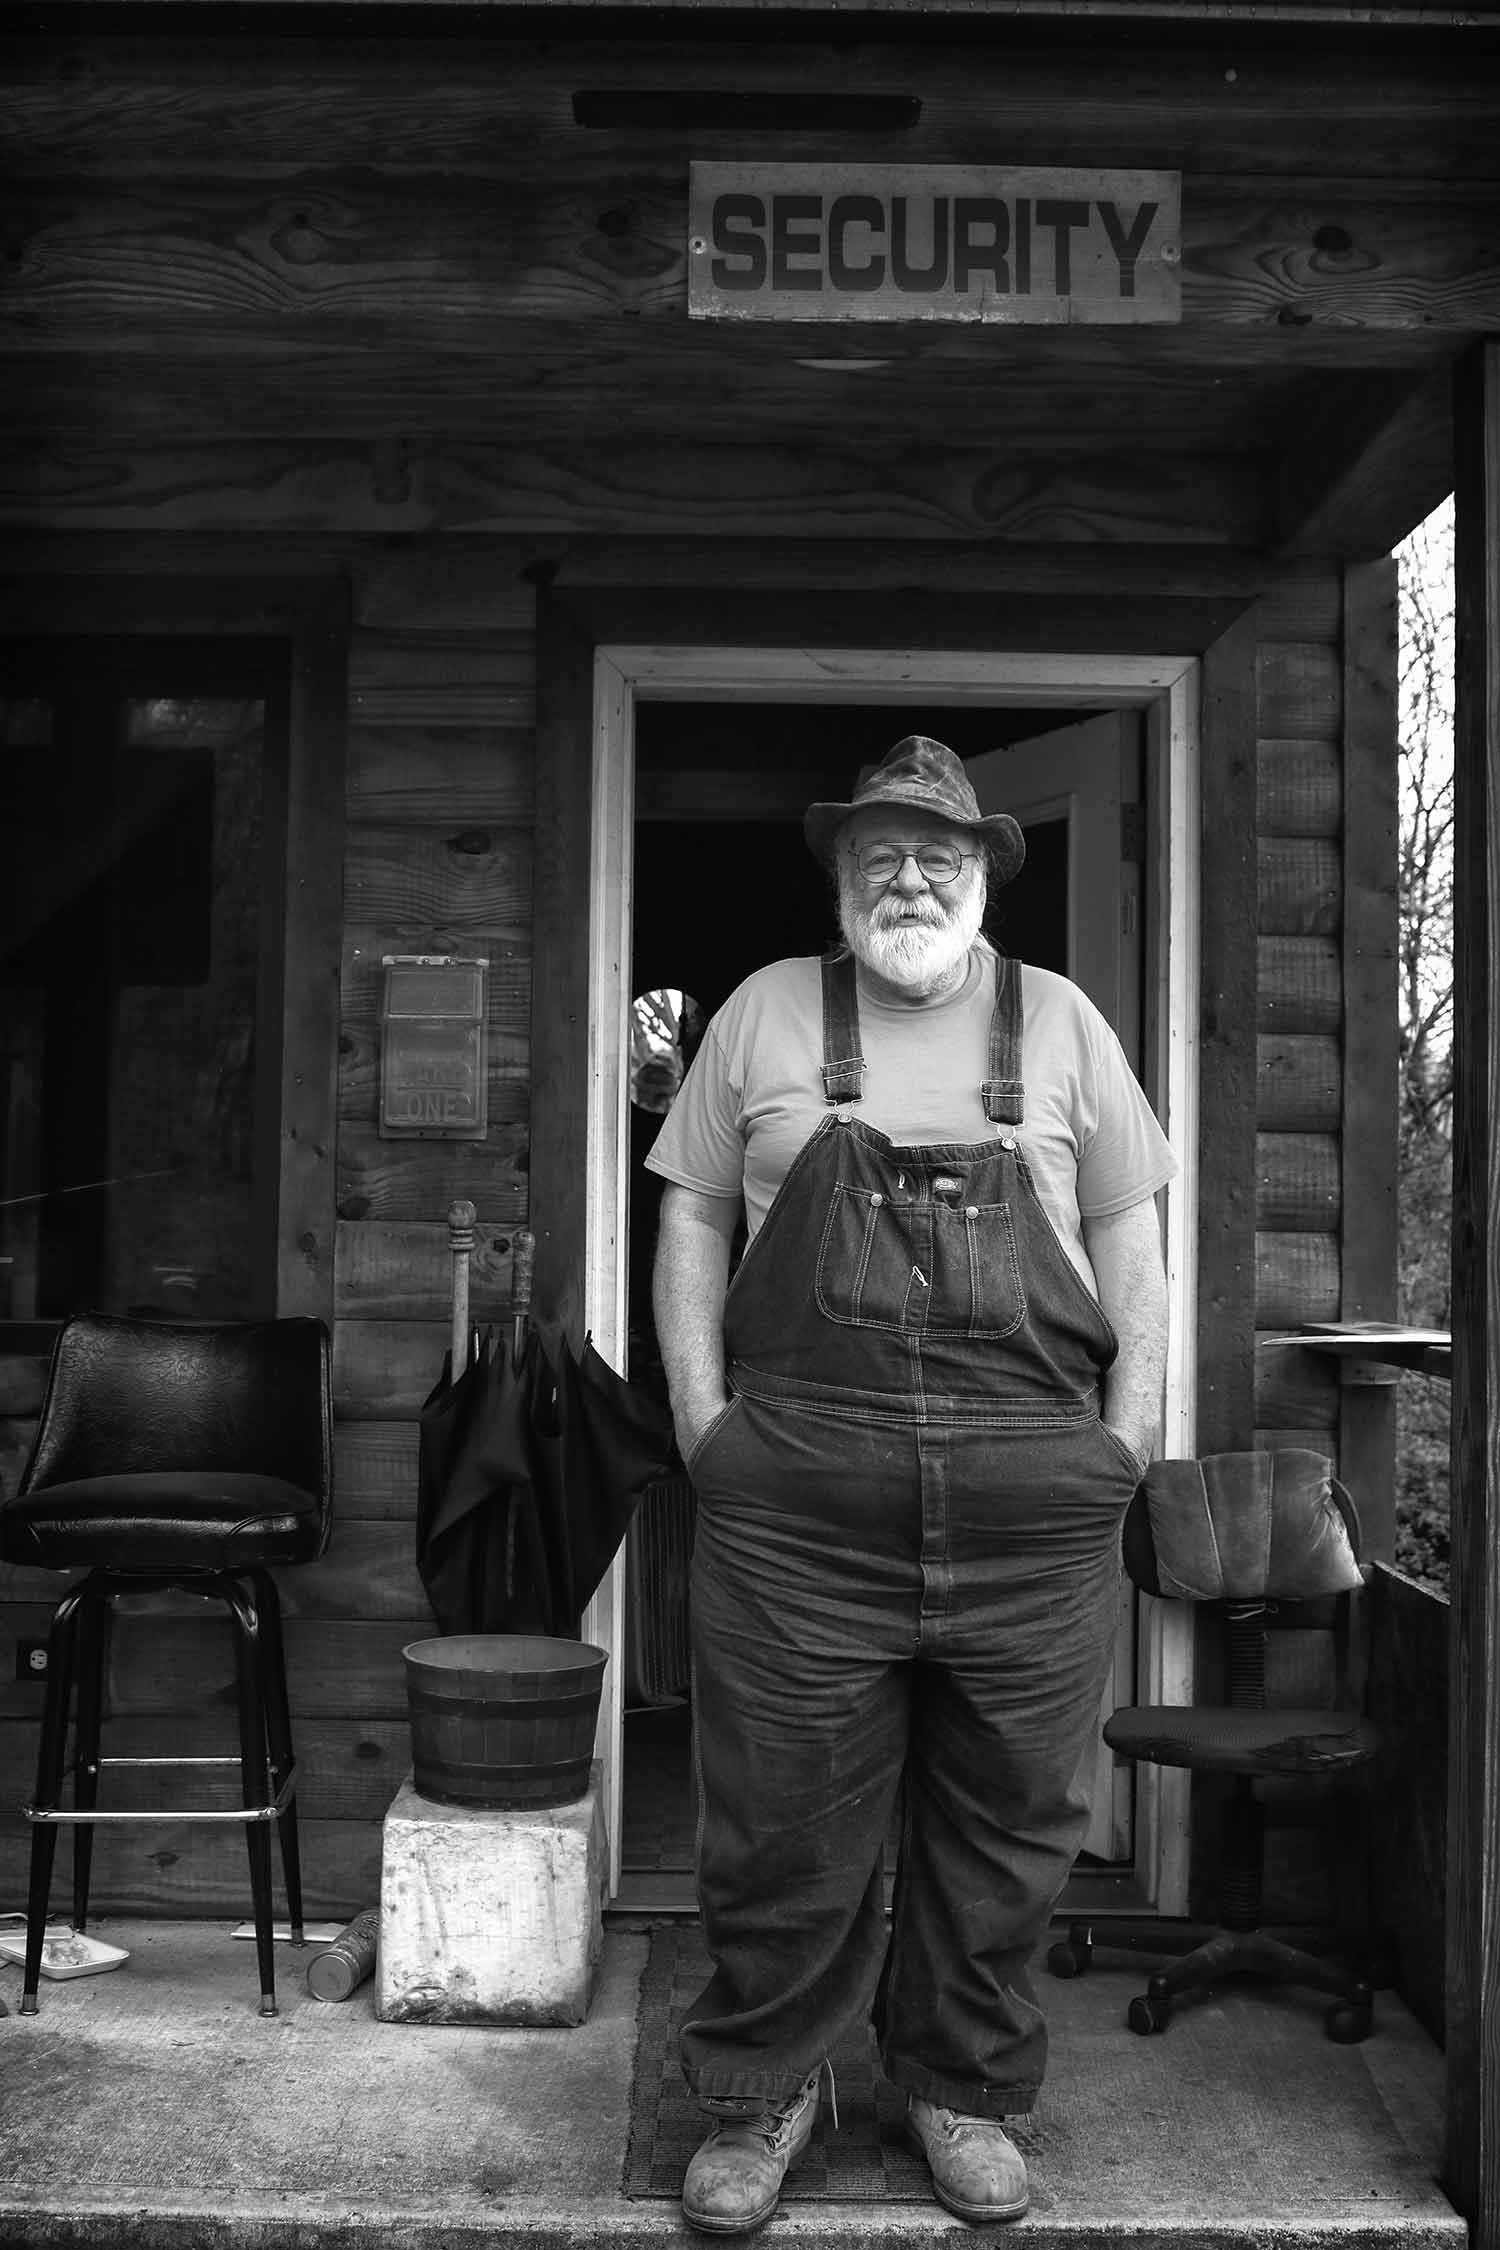 Clyde Brantley, head of security for the community at McCloud Mt. Restaurant and Lodge, stands watch at the gate. photo by Sarah Plemmons - 2019